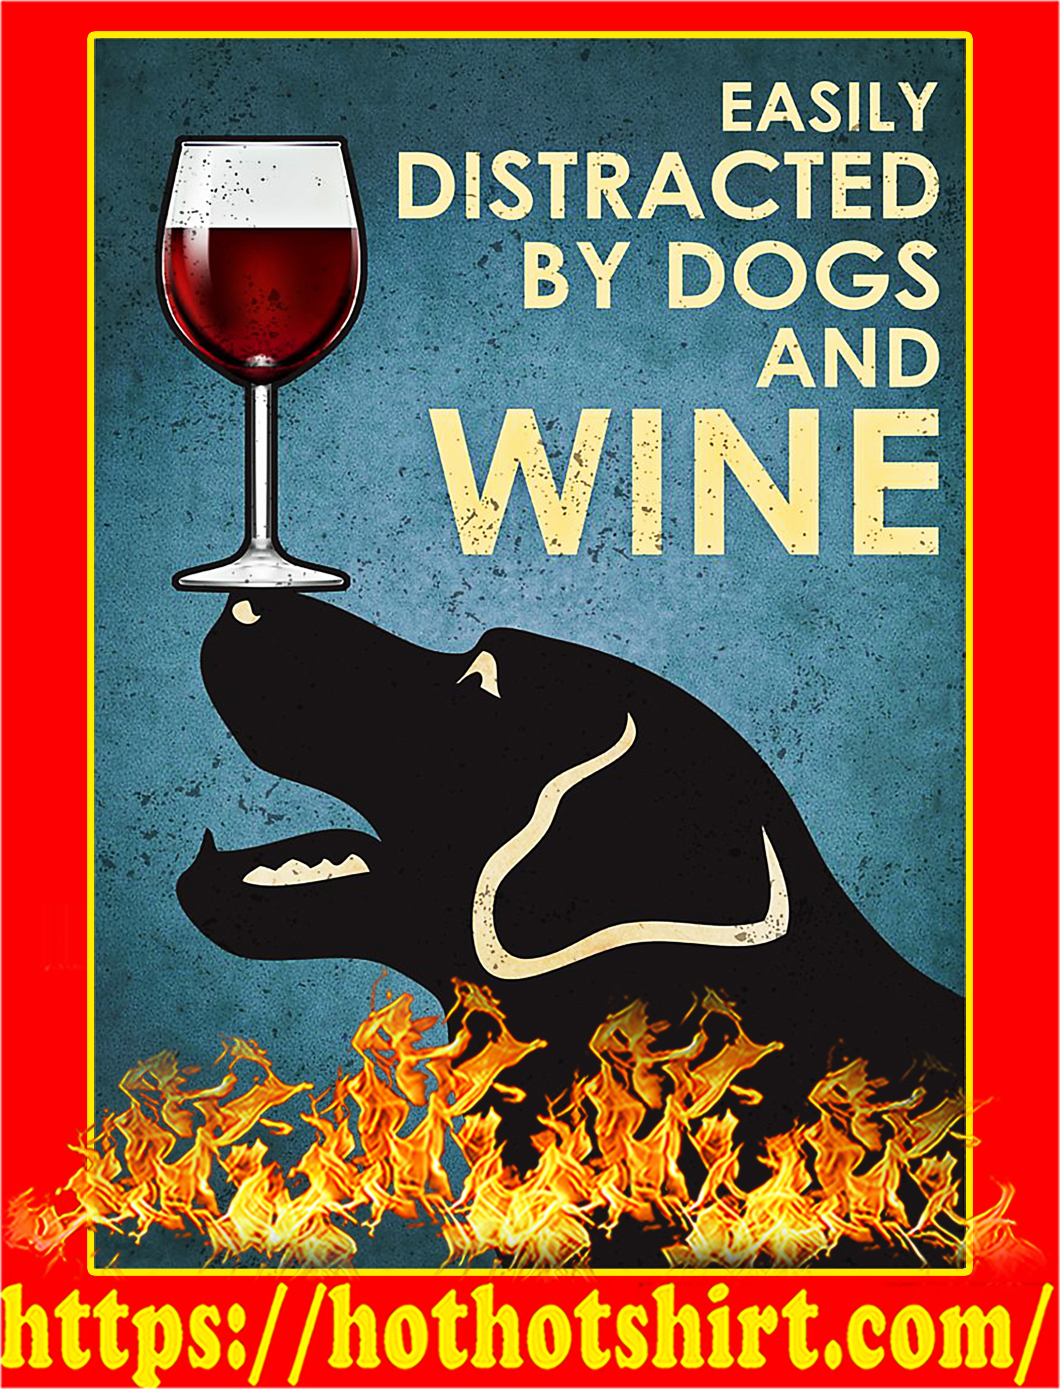 Easily distracted by dogs and wine poster - A3